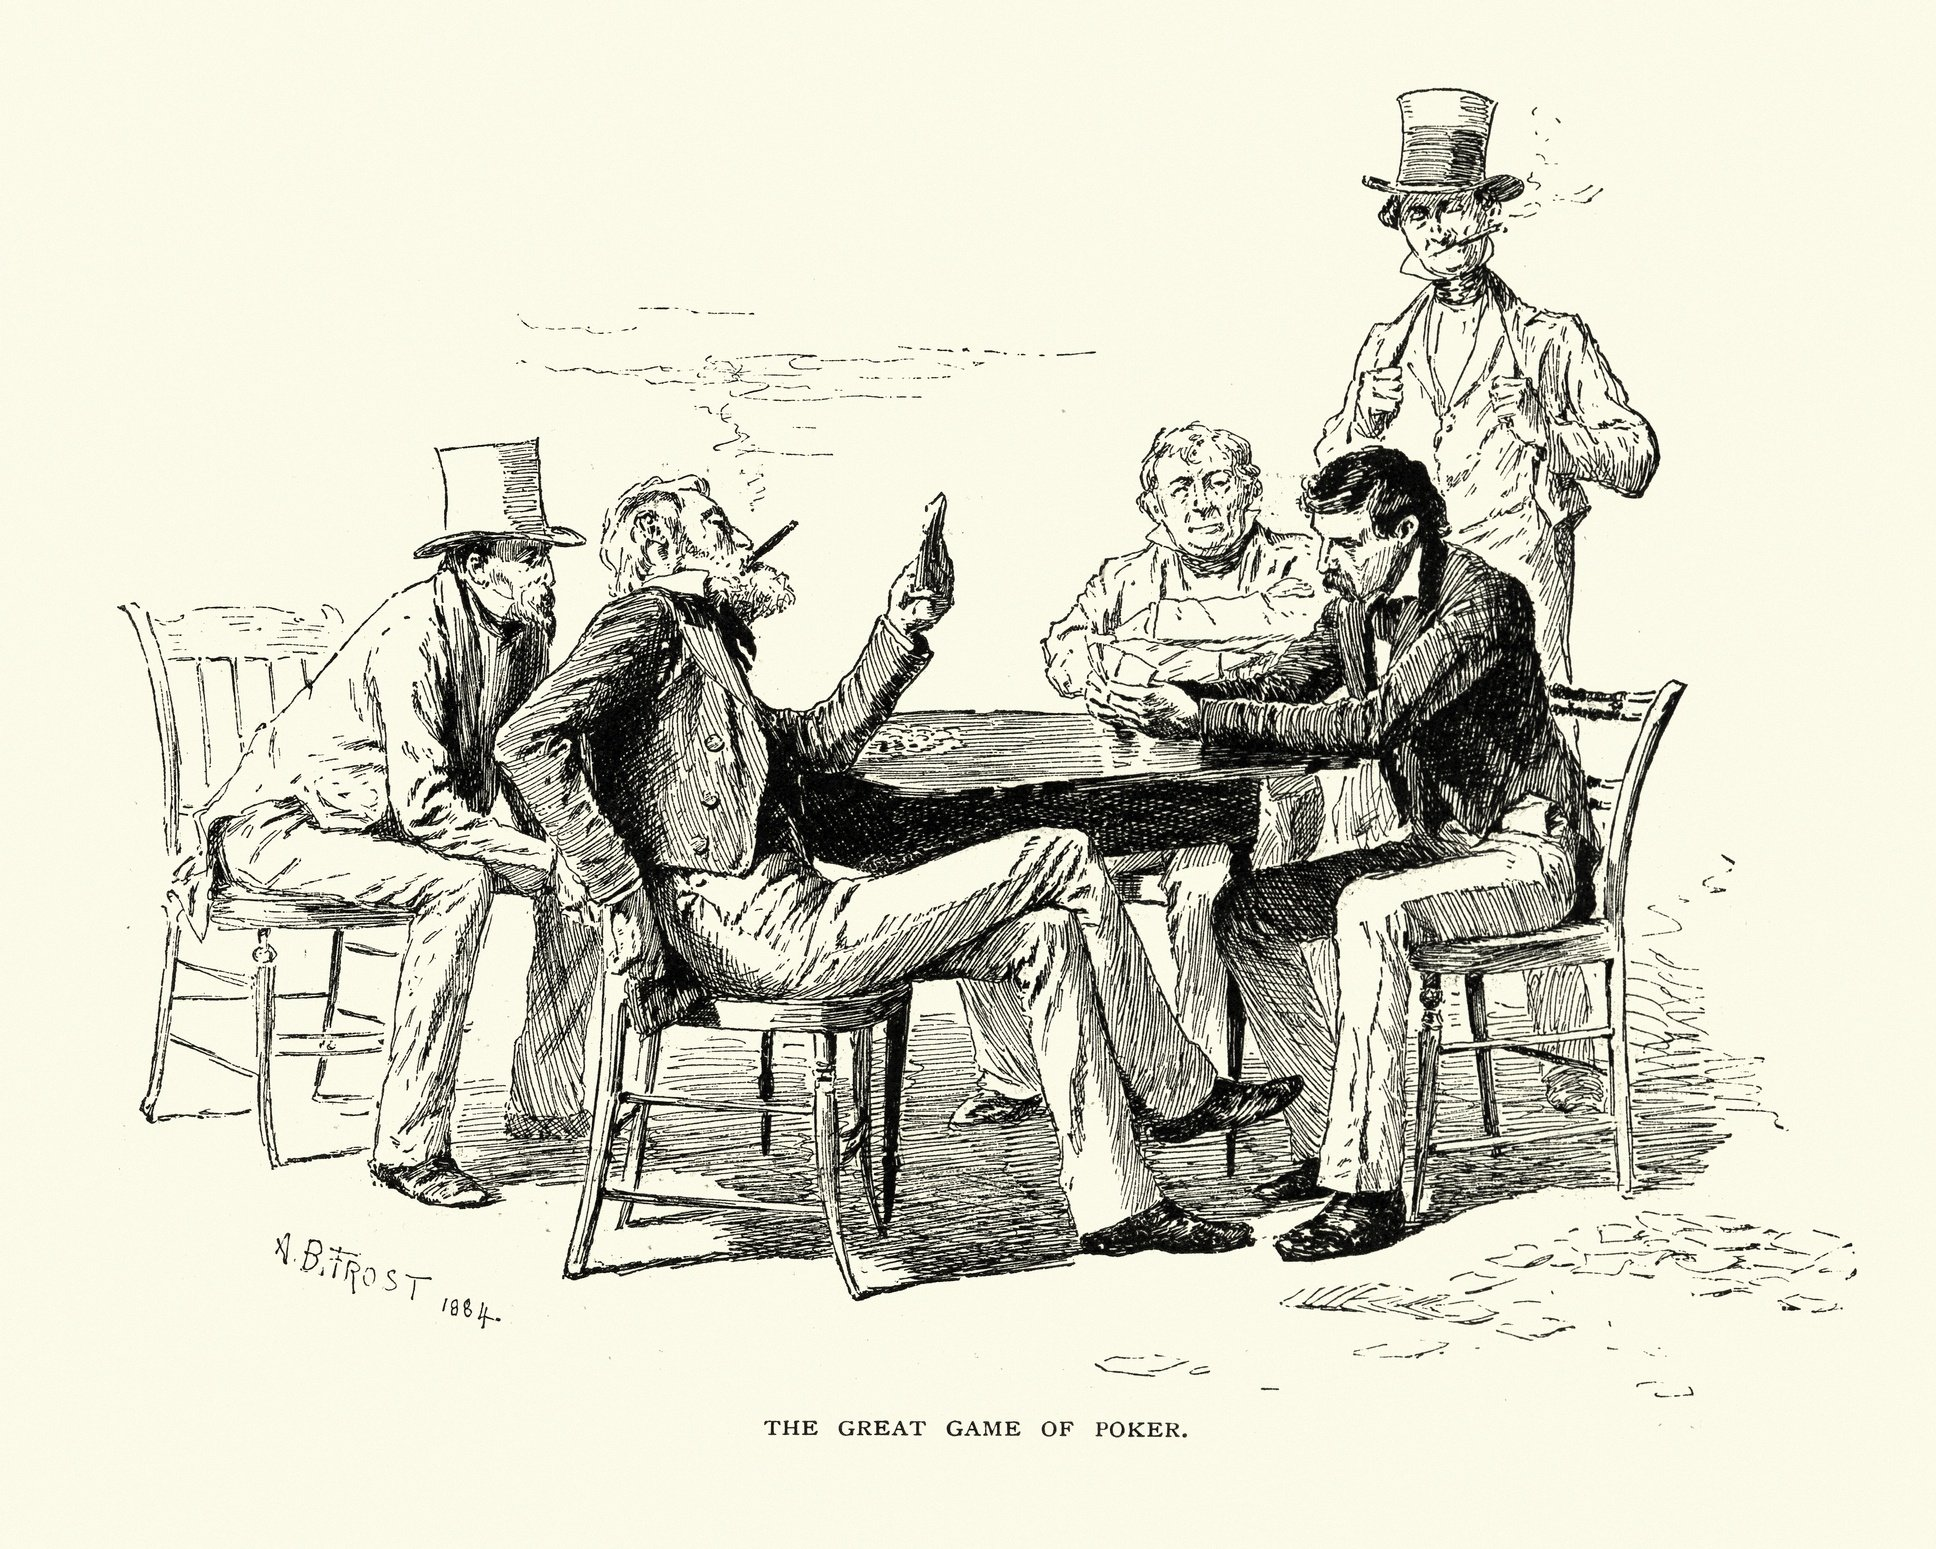 Poker game in the 19th Century.